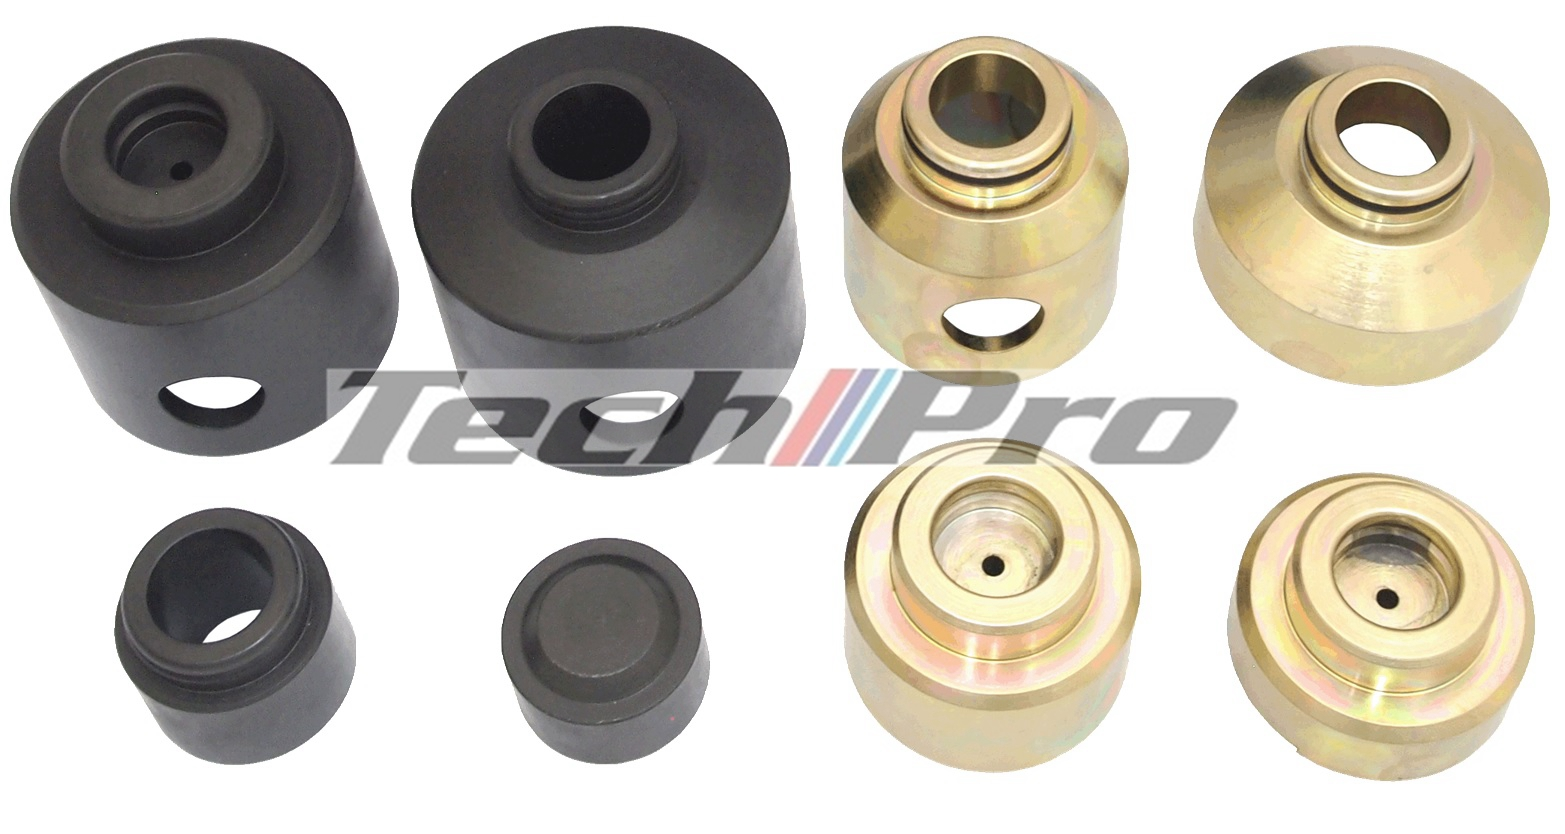 JL-007--Land Rover-V8 Ball Joint R & I Tool